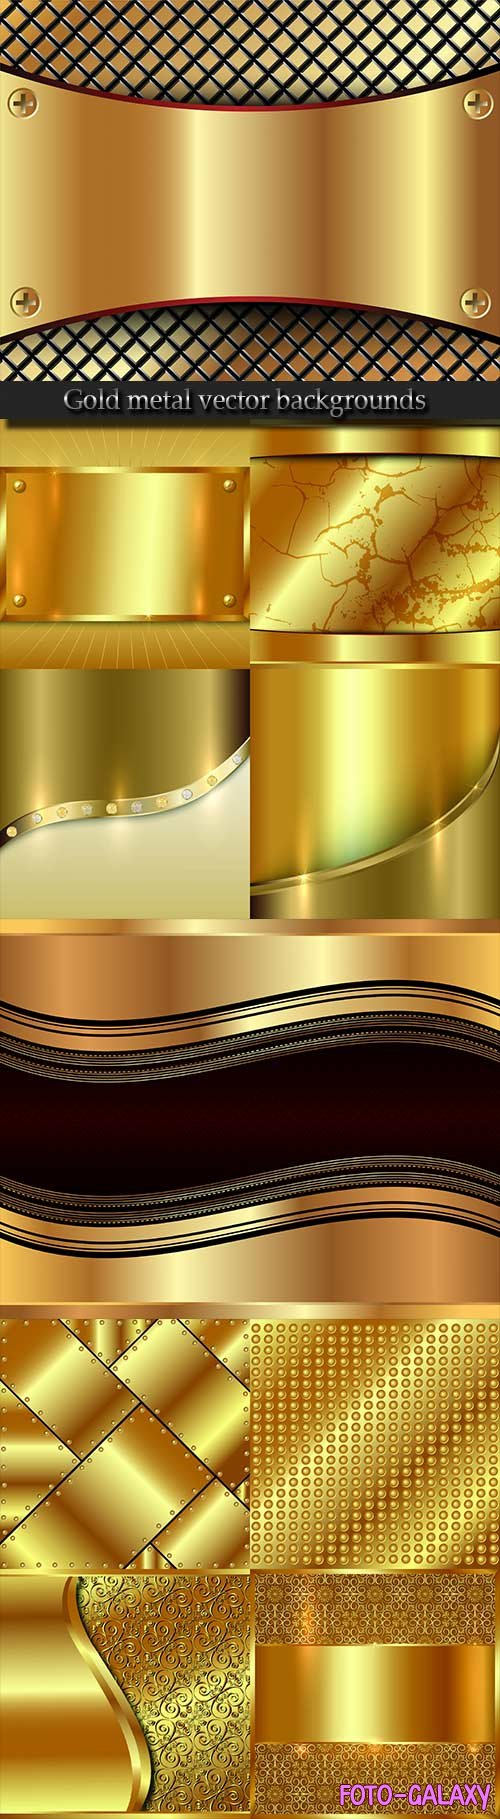 Gold metal vector backgrounds